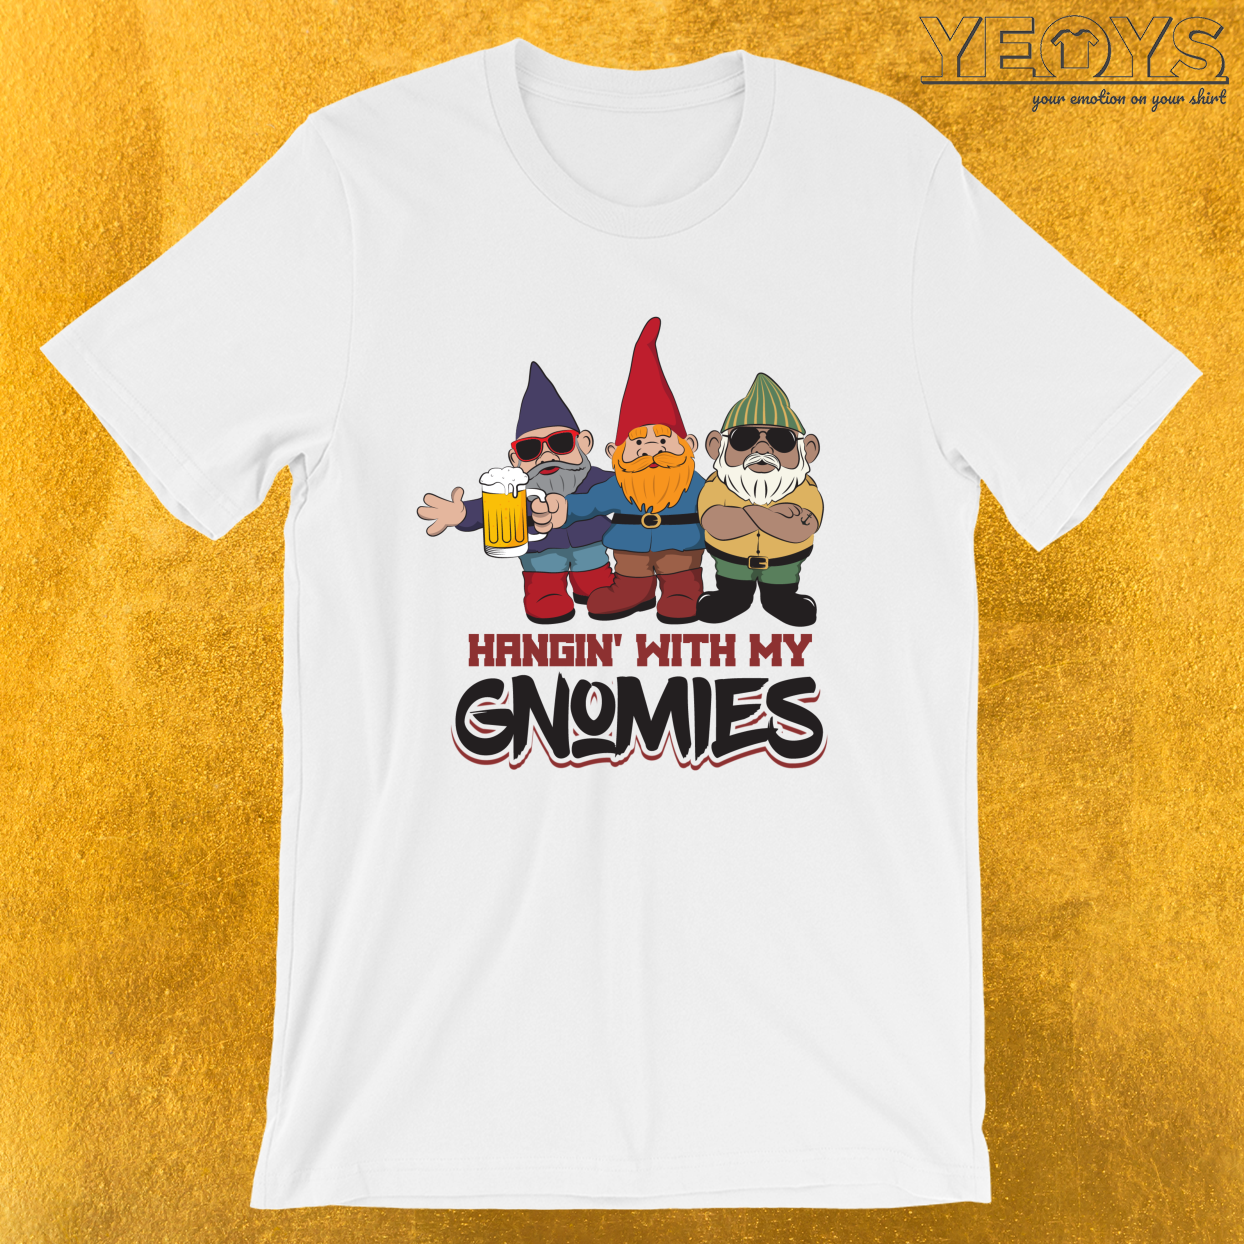 Hangin' With My Gnomes – Funny Gnome Tee